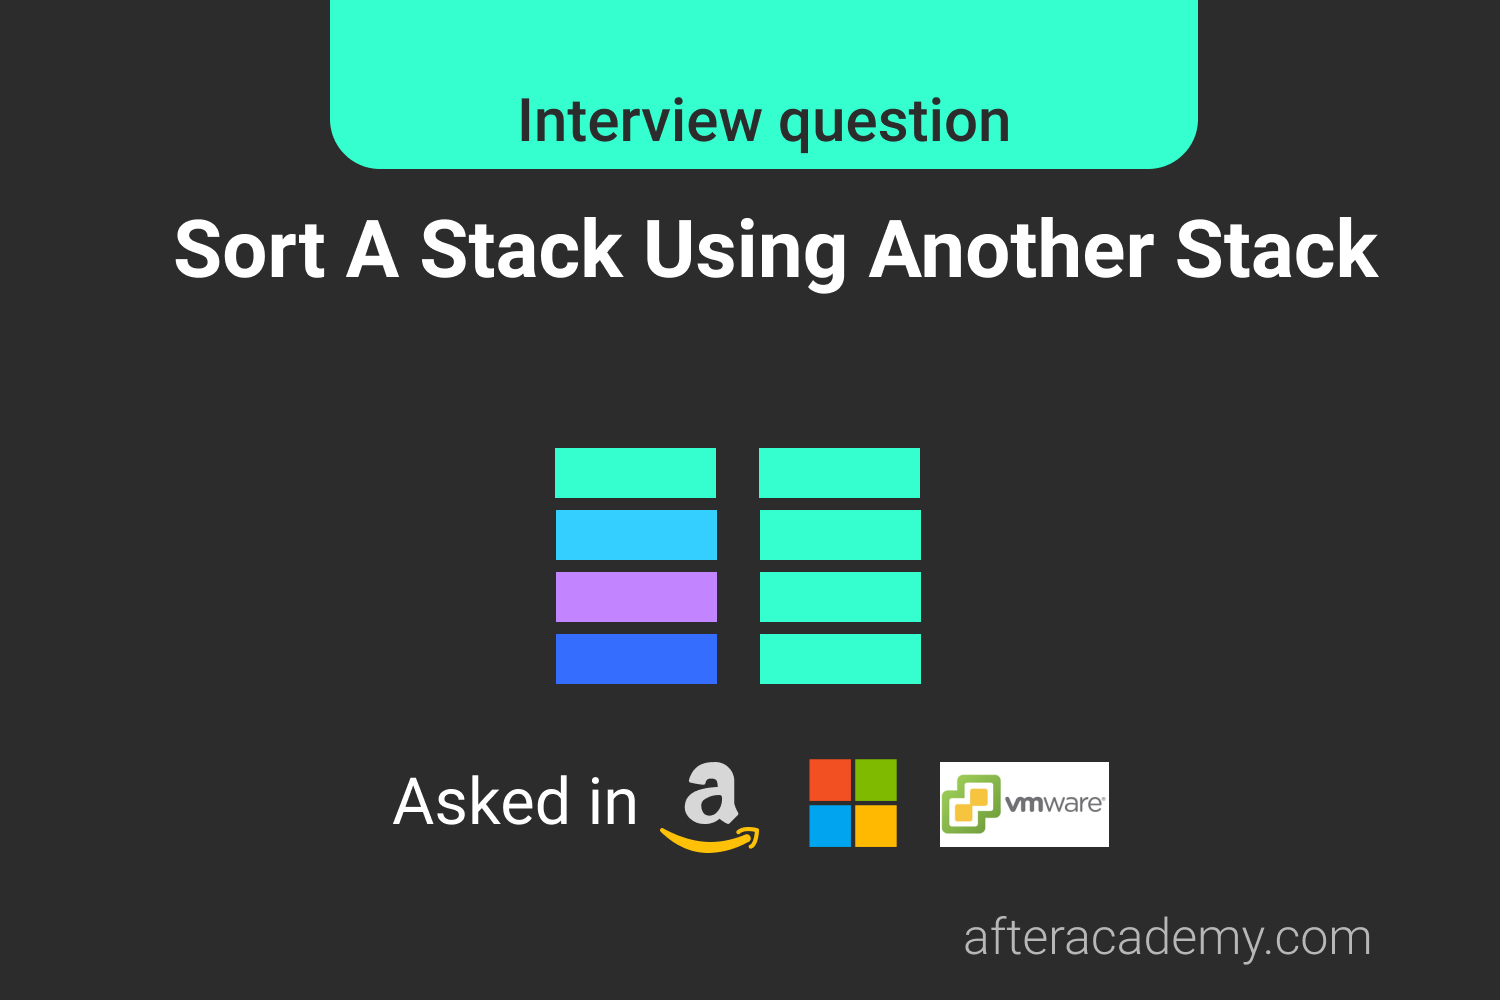 Sort A Stack Using Another Stack